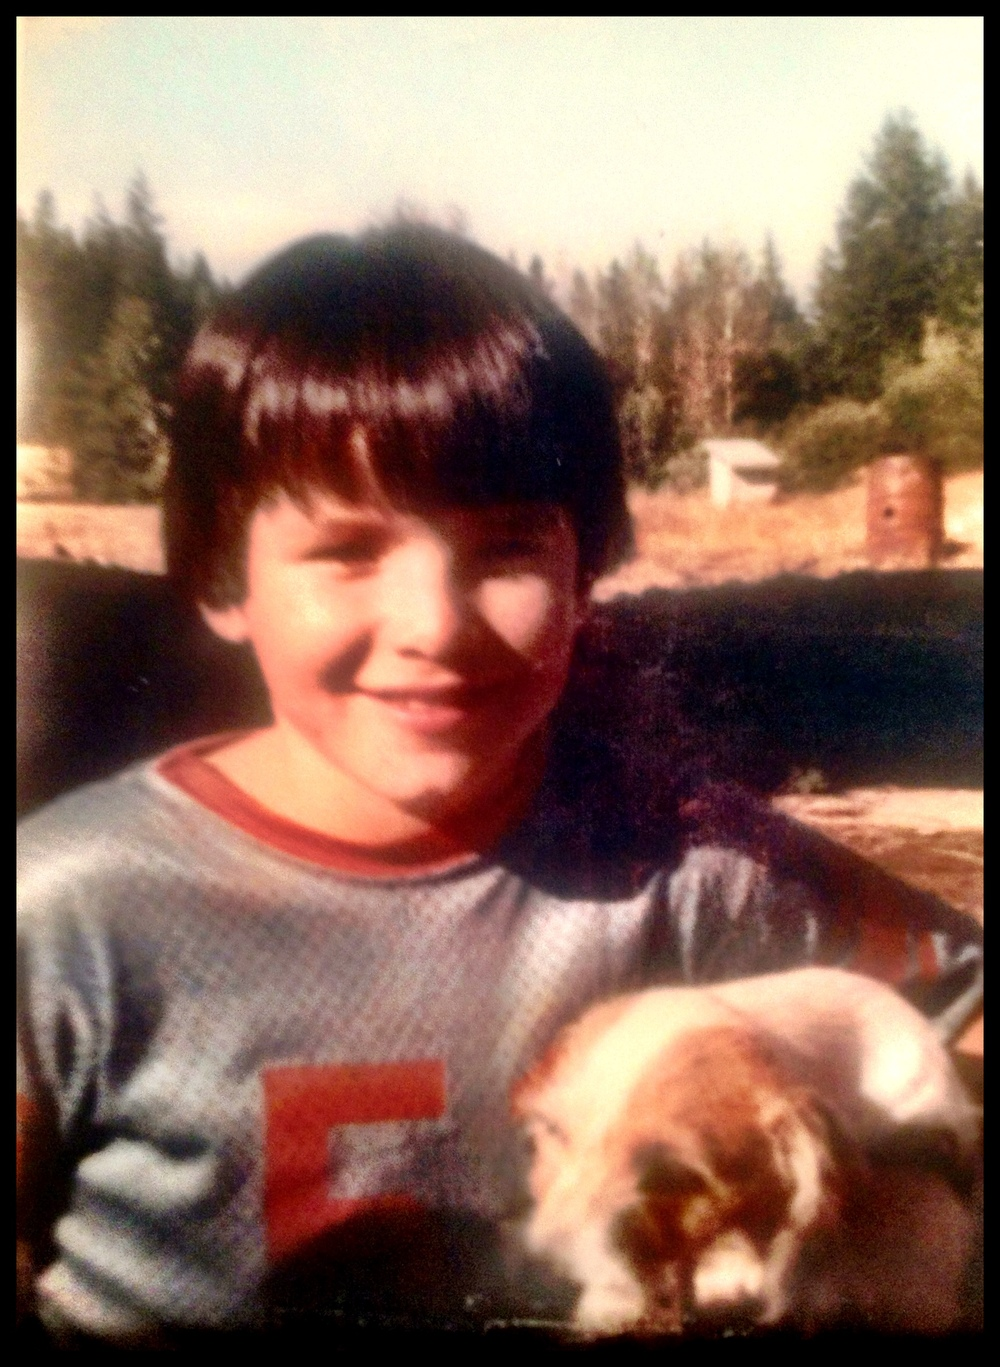 Arnold, my big brother, with our dog Hobo, circa 1974